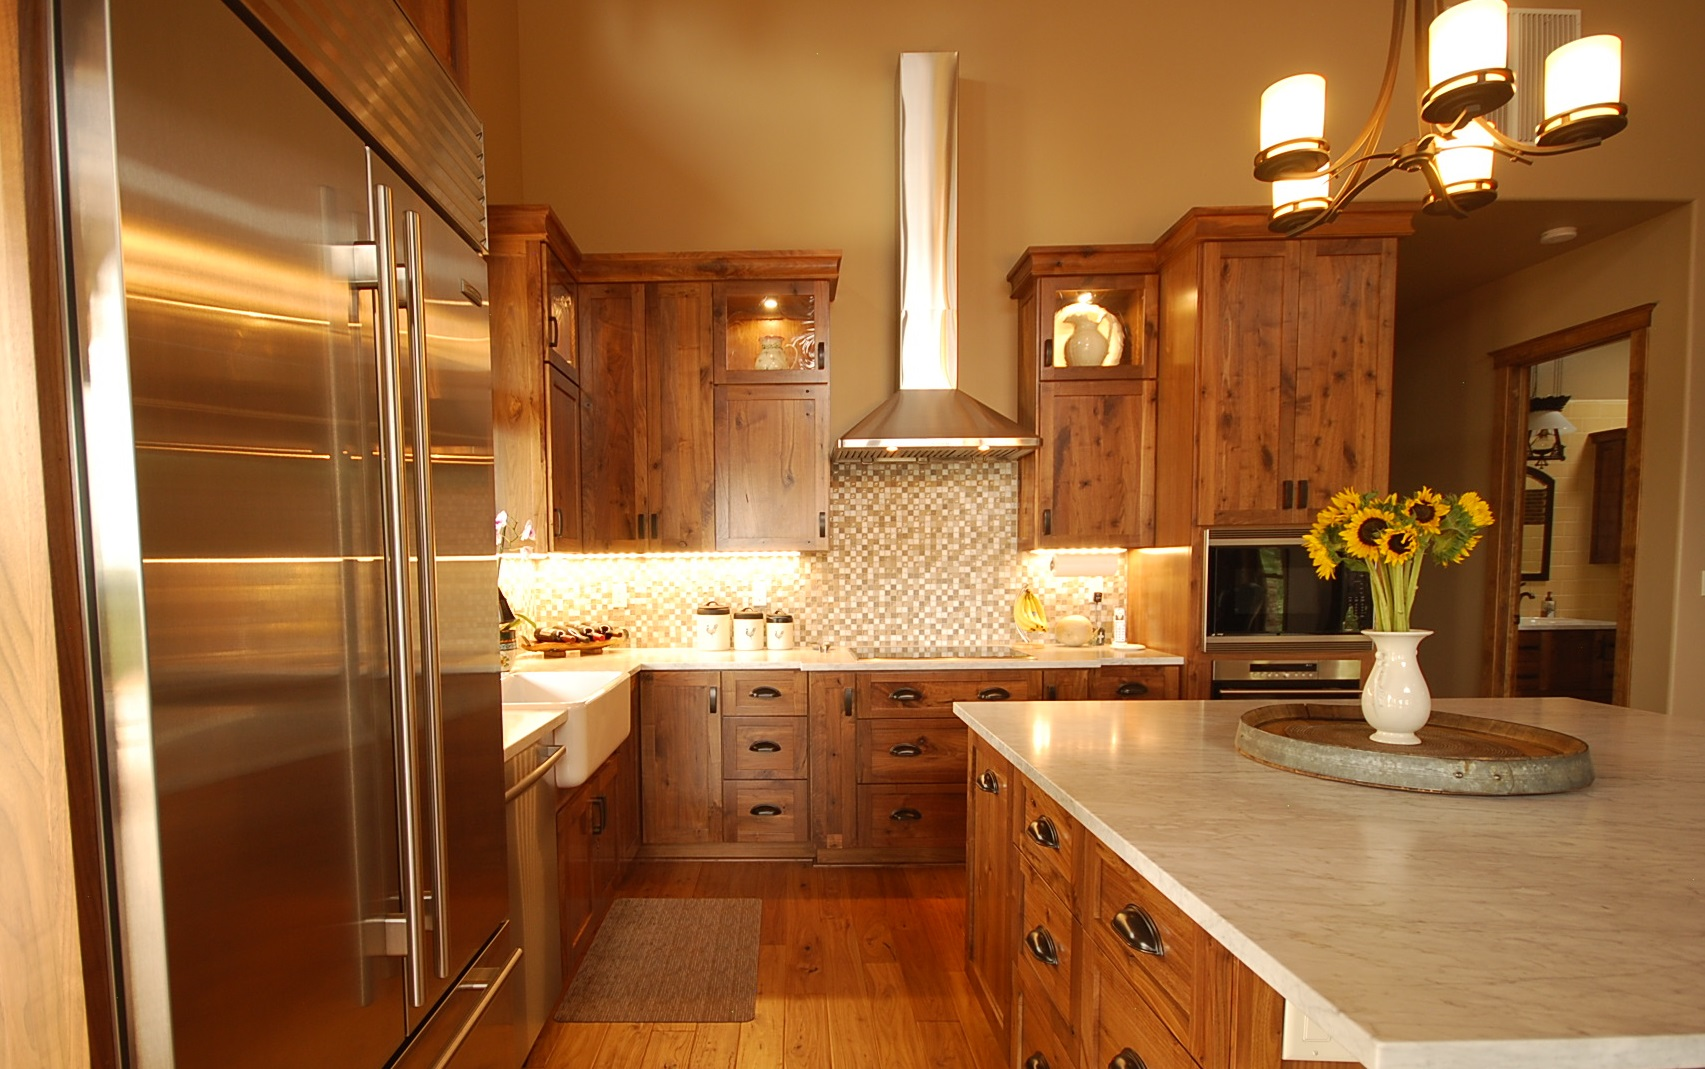 How Much For New Custom Kitchen Cabinets